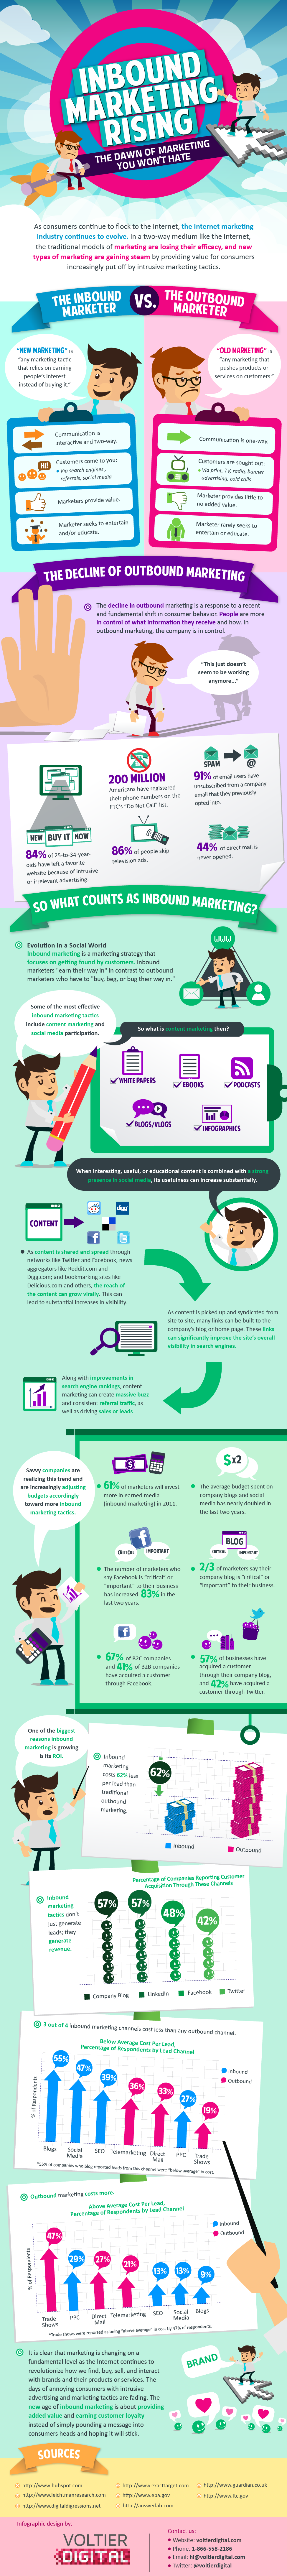 Web Marketing AKA Inbound Marketing Infographic